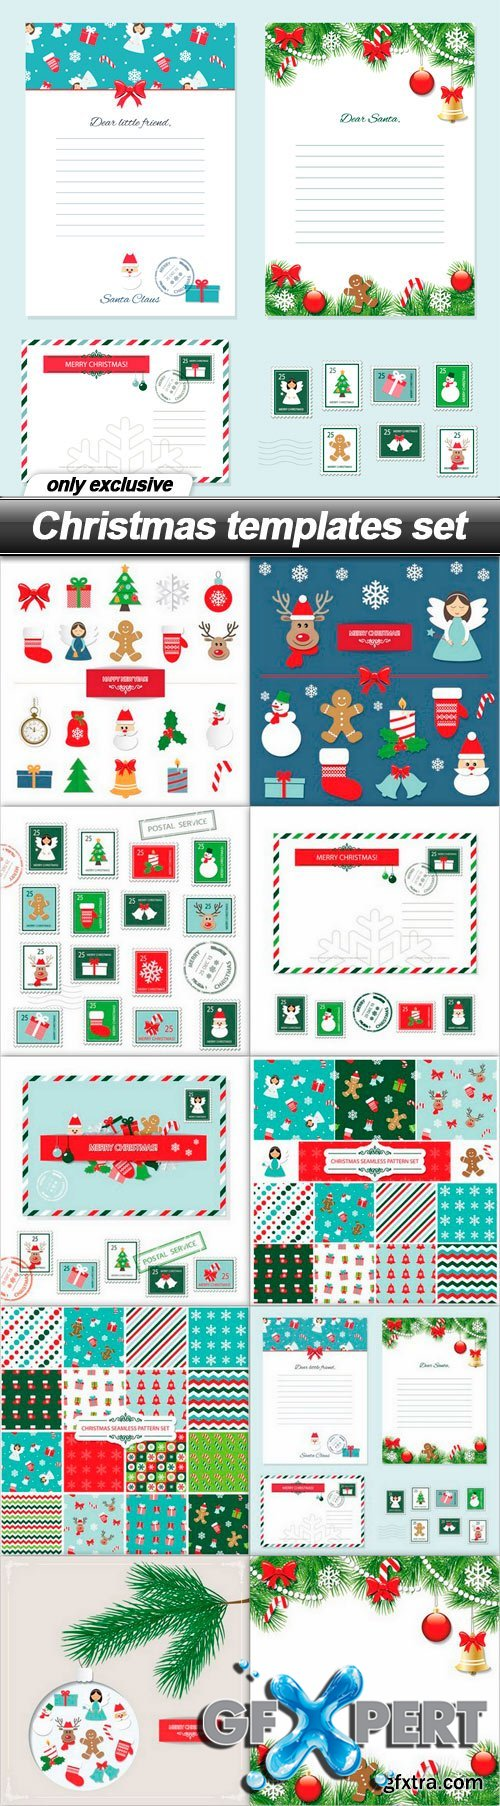 Christmas templates set - 10 EPS